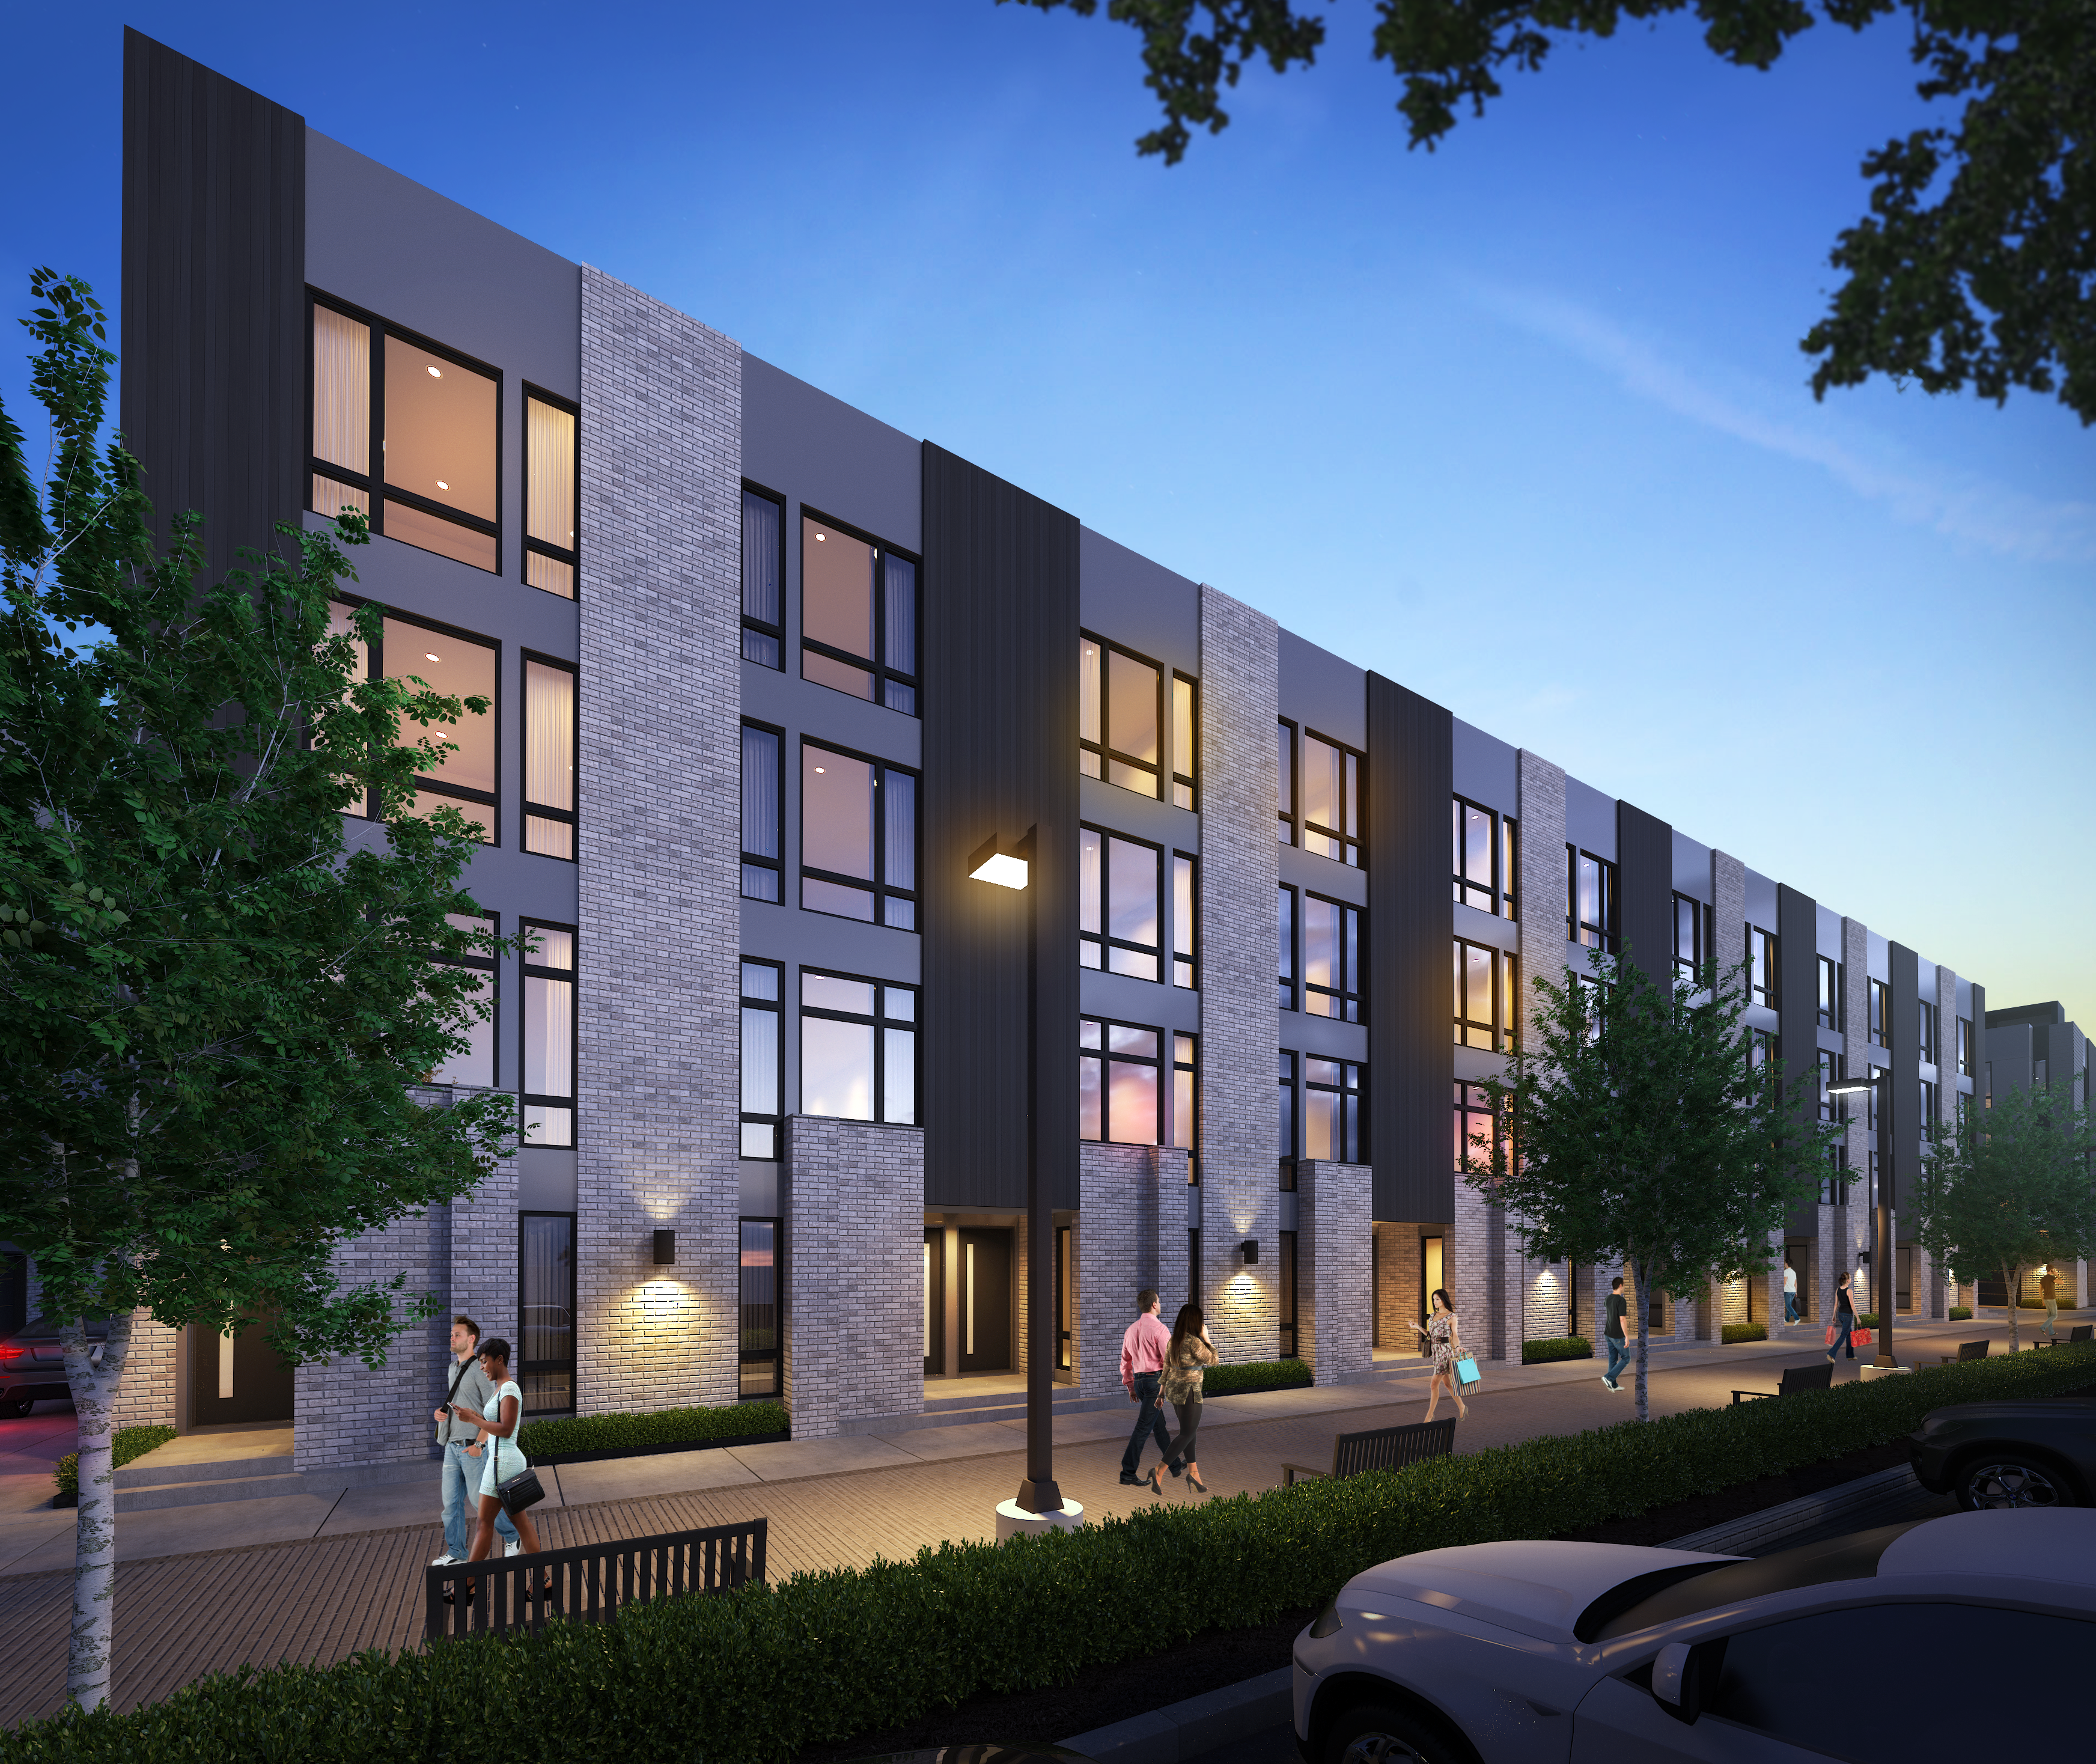 43 Townhome Development Planned For Northern Liberties Curbed Philly Lokal Hotel